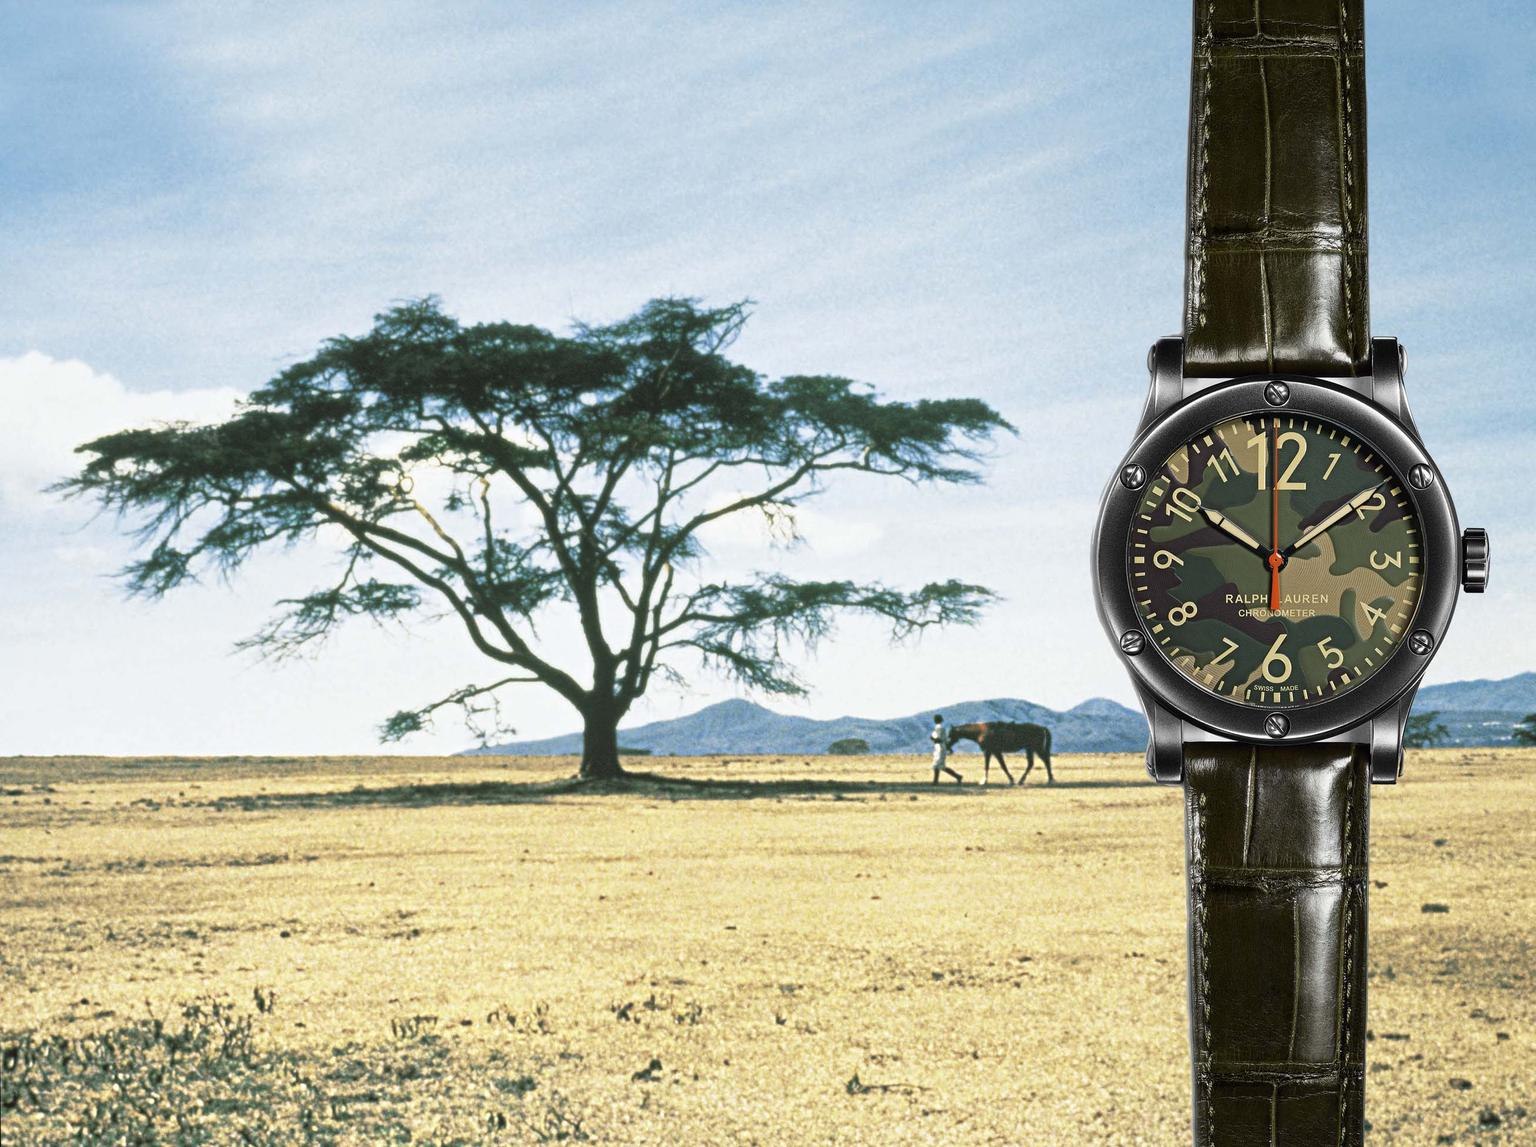 Ralph Lauren RL67 Safari Chronometer with a camouflage dial and a 45mm blackened steel case will appeal to hunters of sports watches who expect Swiss chronometry precision on their adventures.